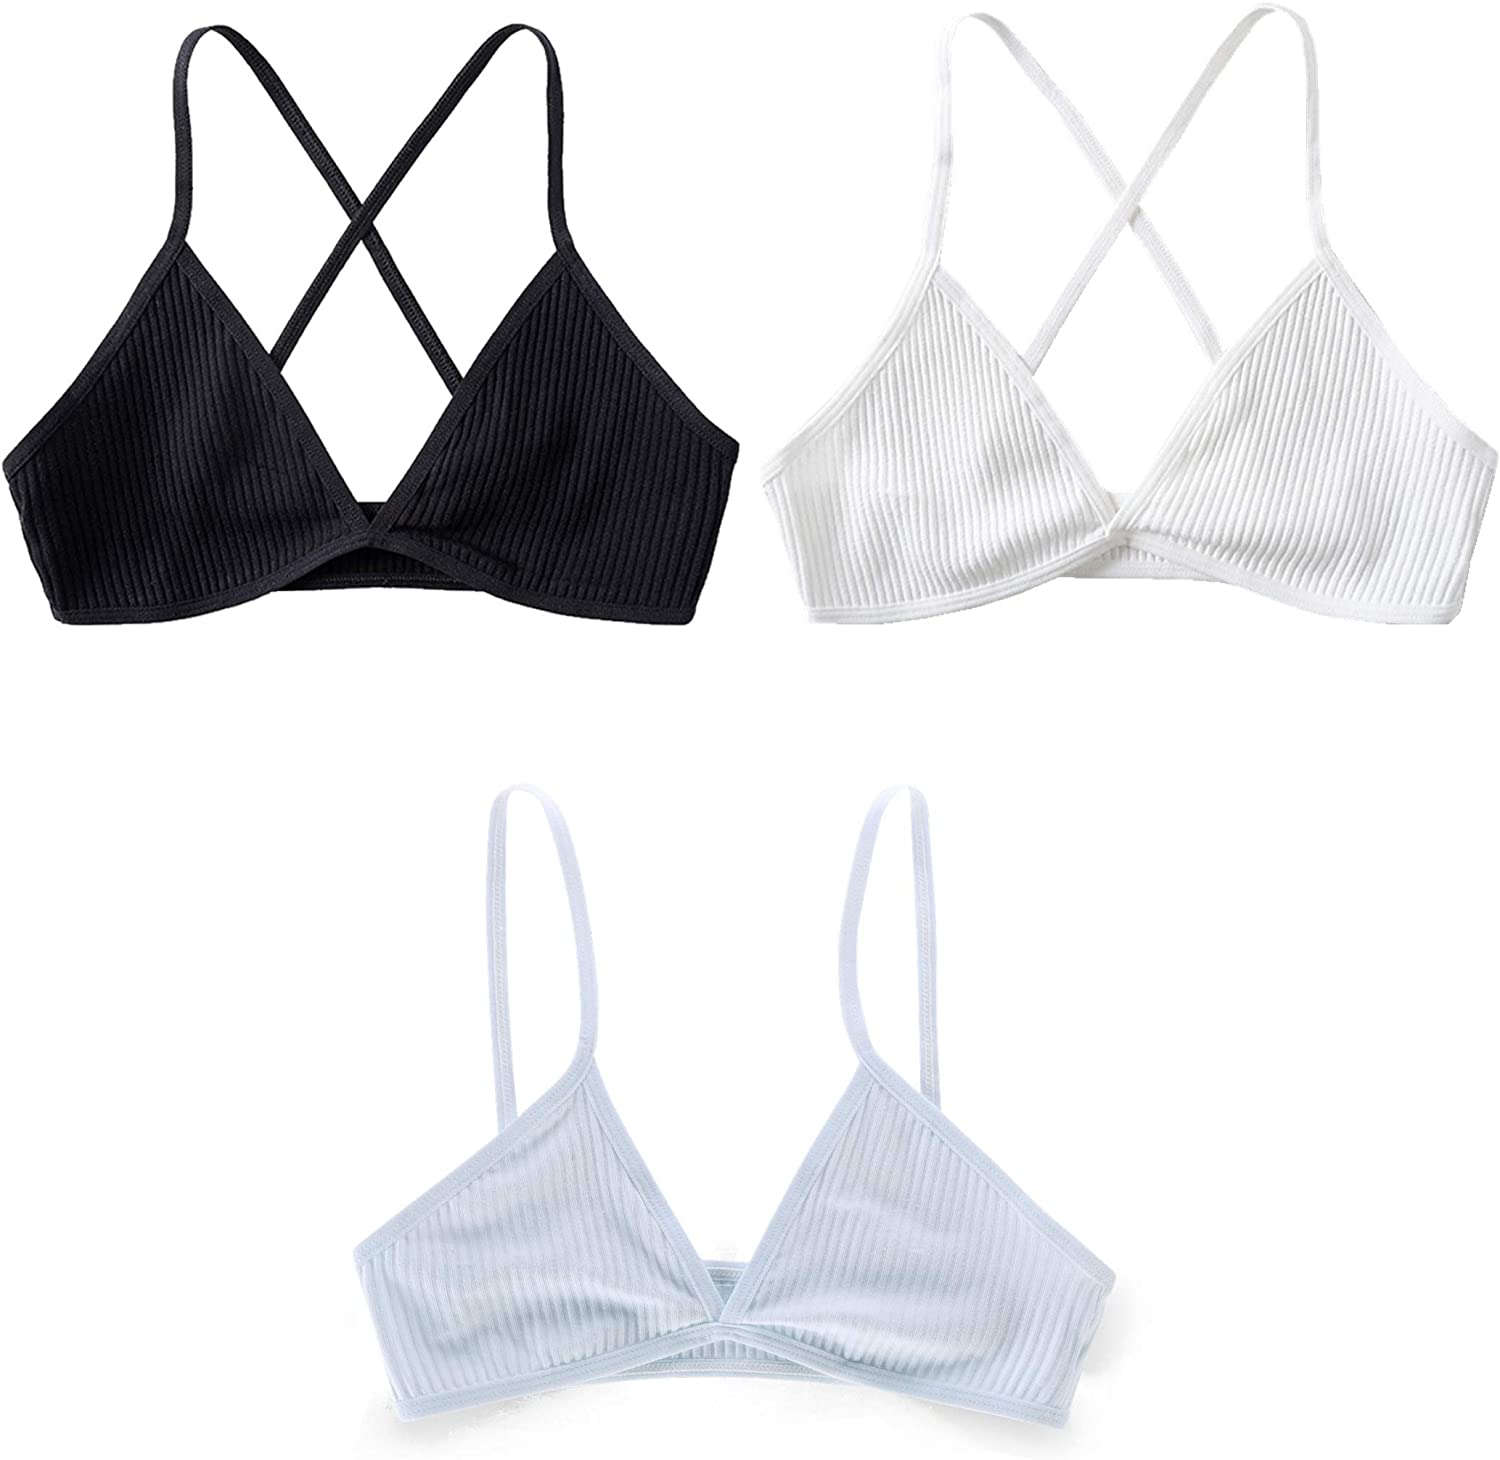 Basic triangle ribbed knit bralette with thin straps